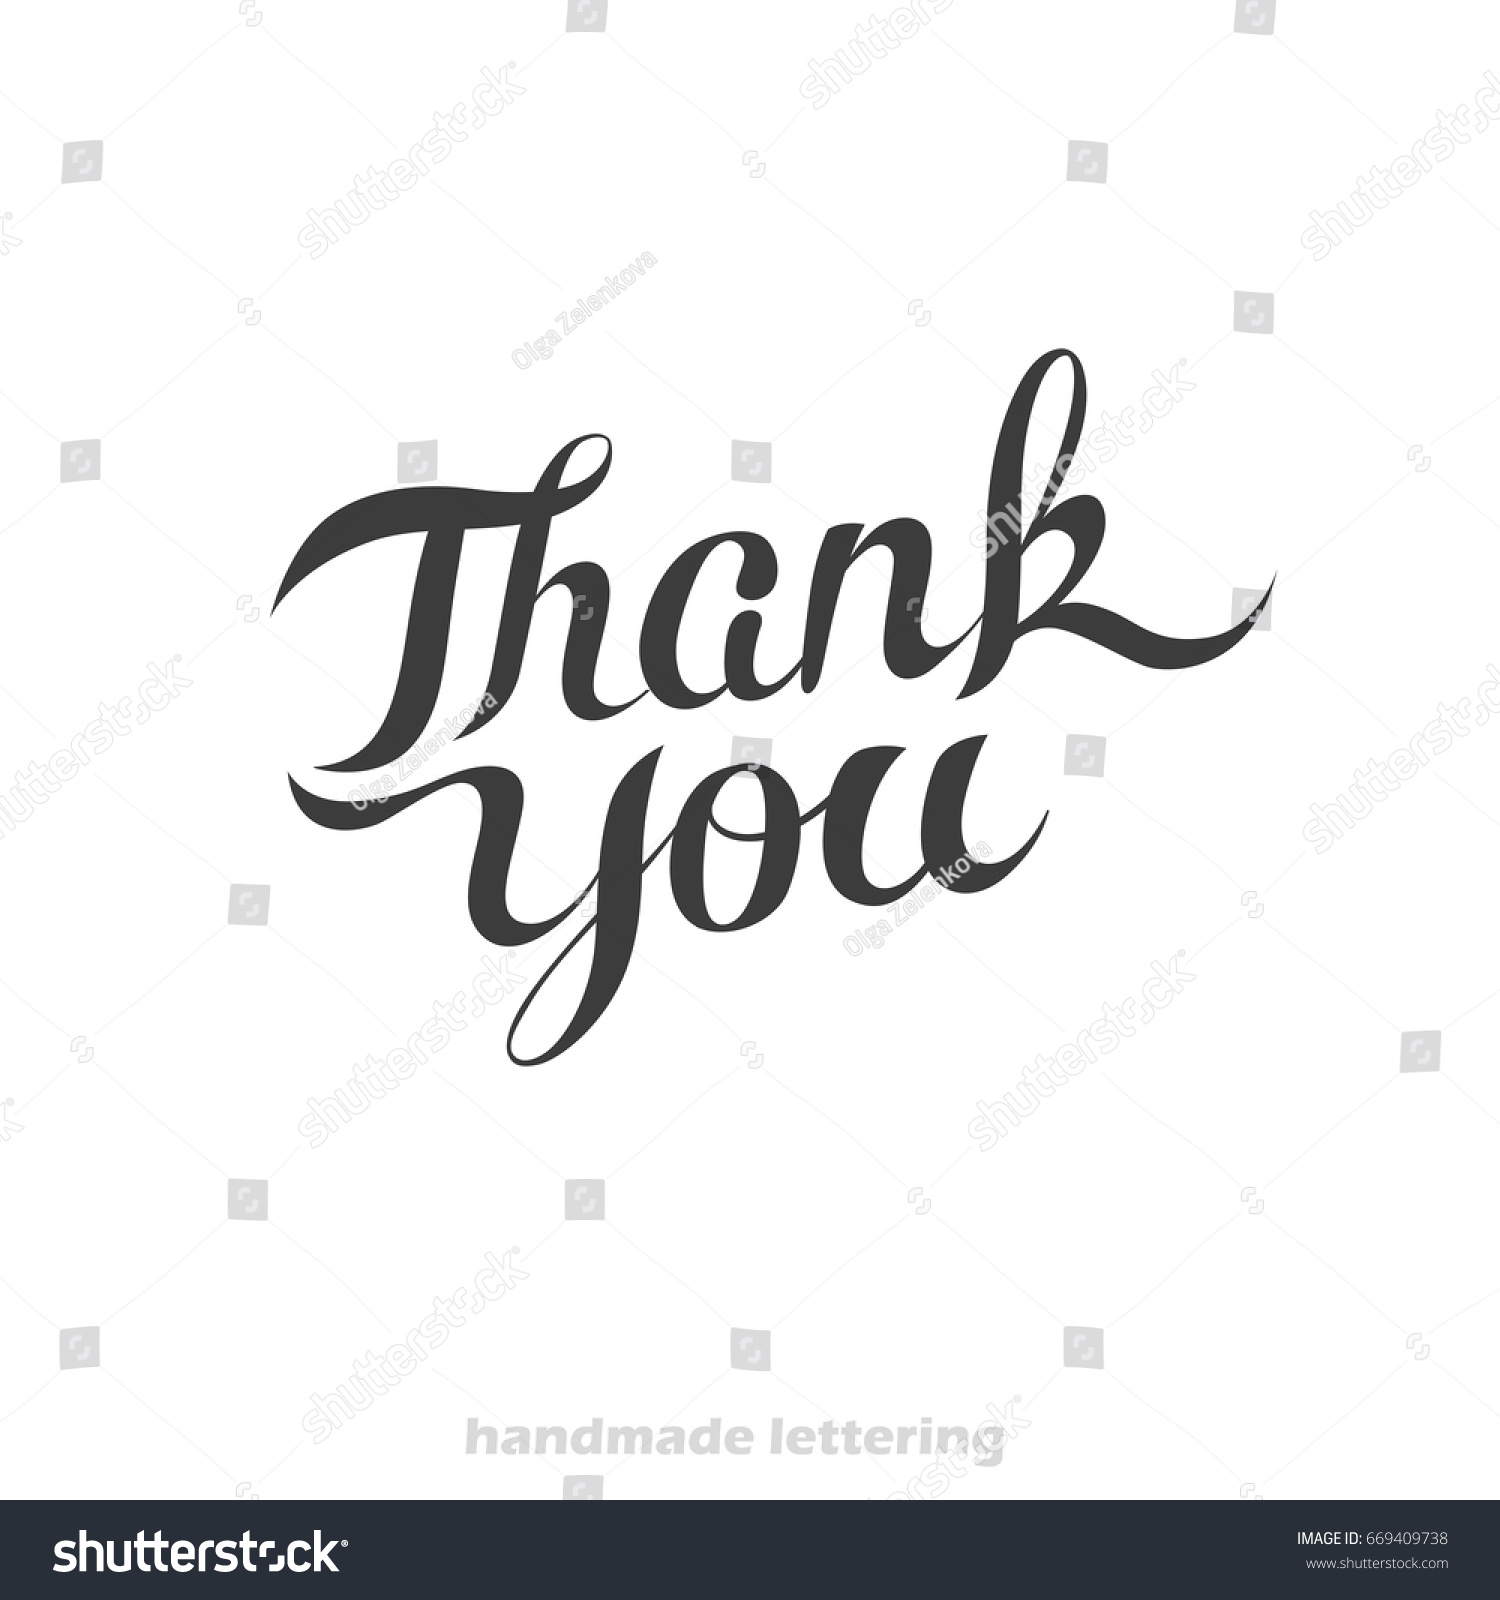 Thank you hand lettering card greeting stock vector 669409738 thank you hand lettering card greeting stock vector 669409738 shutterstock m4hsunfo